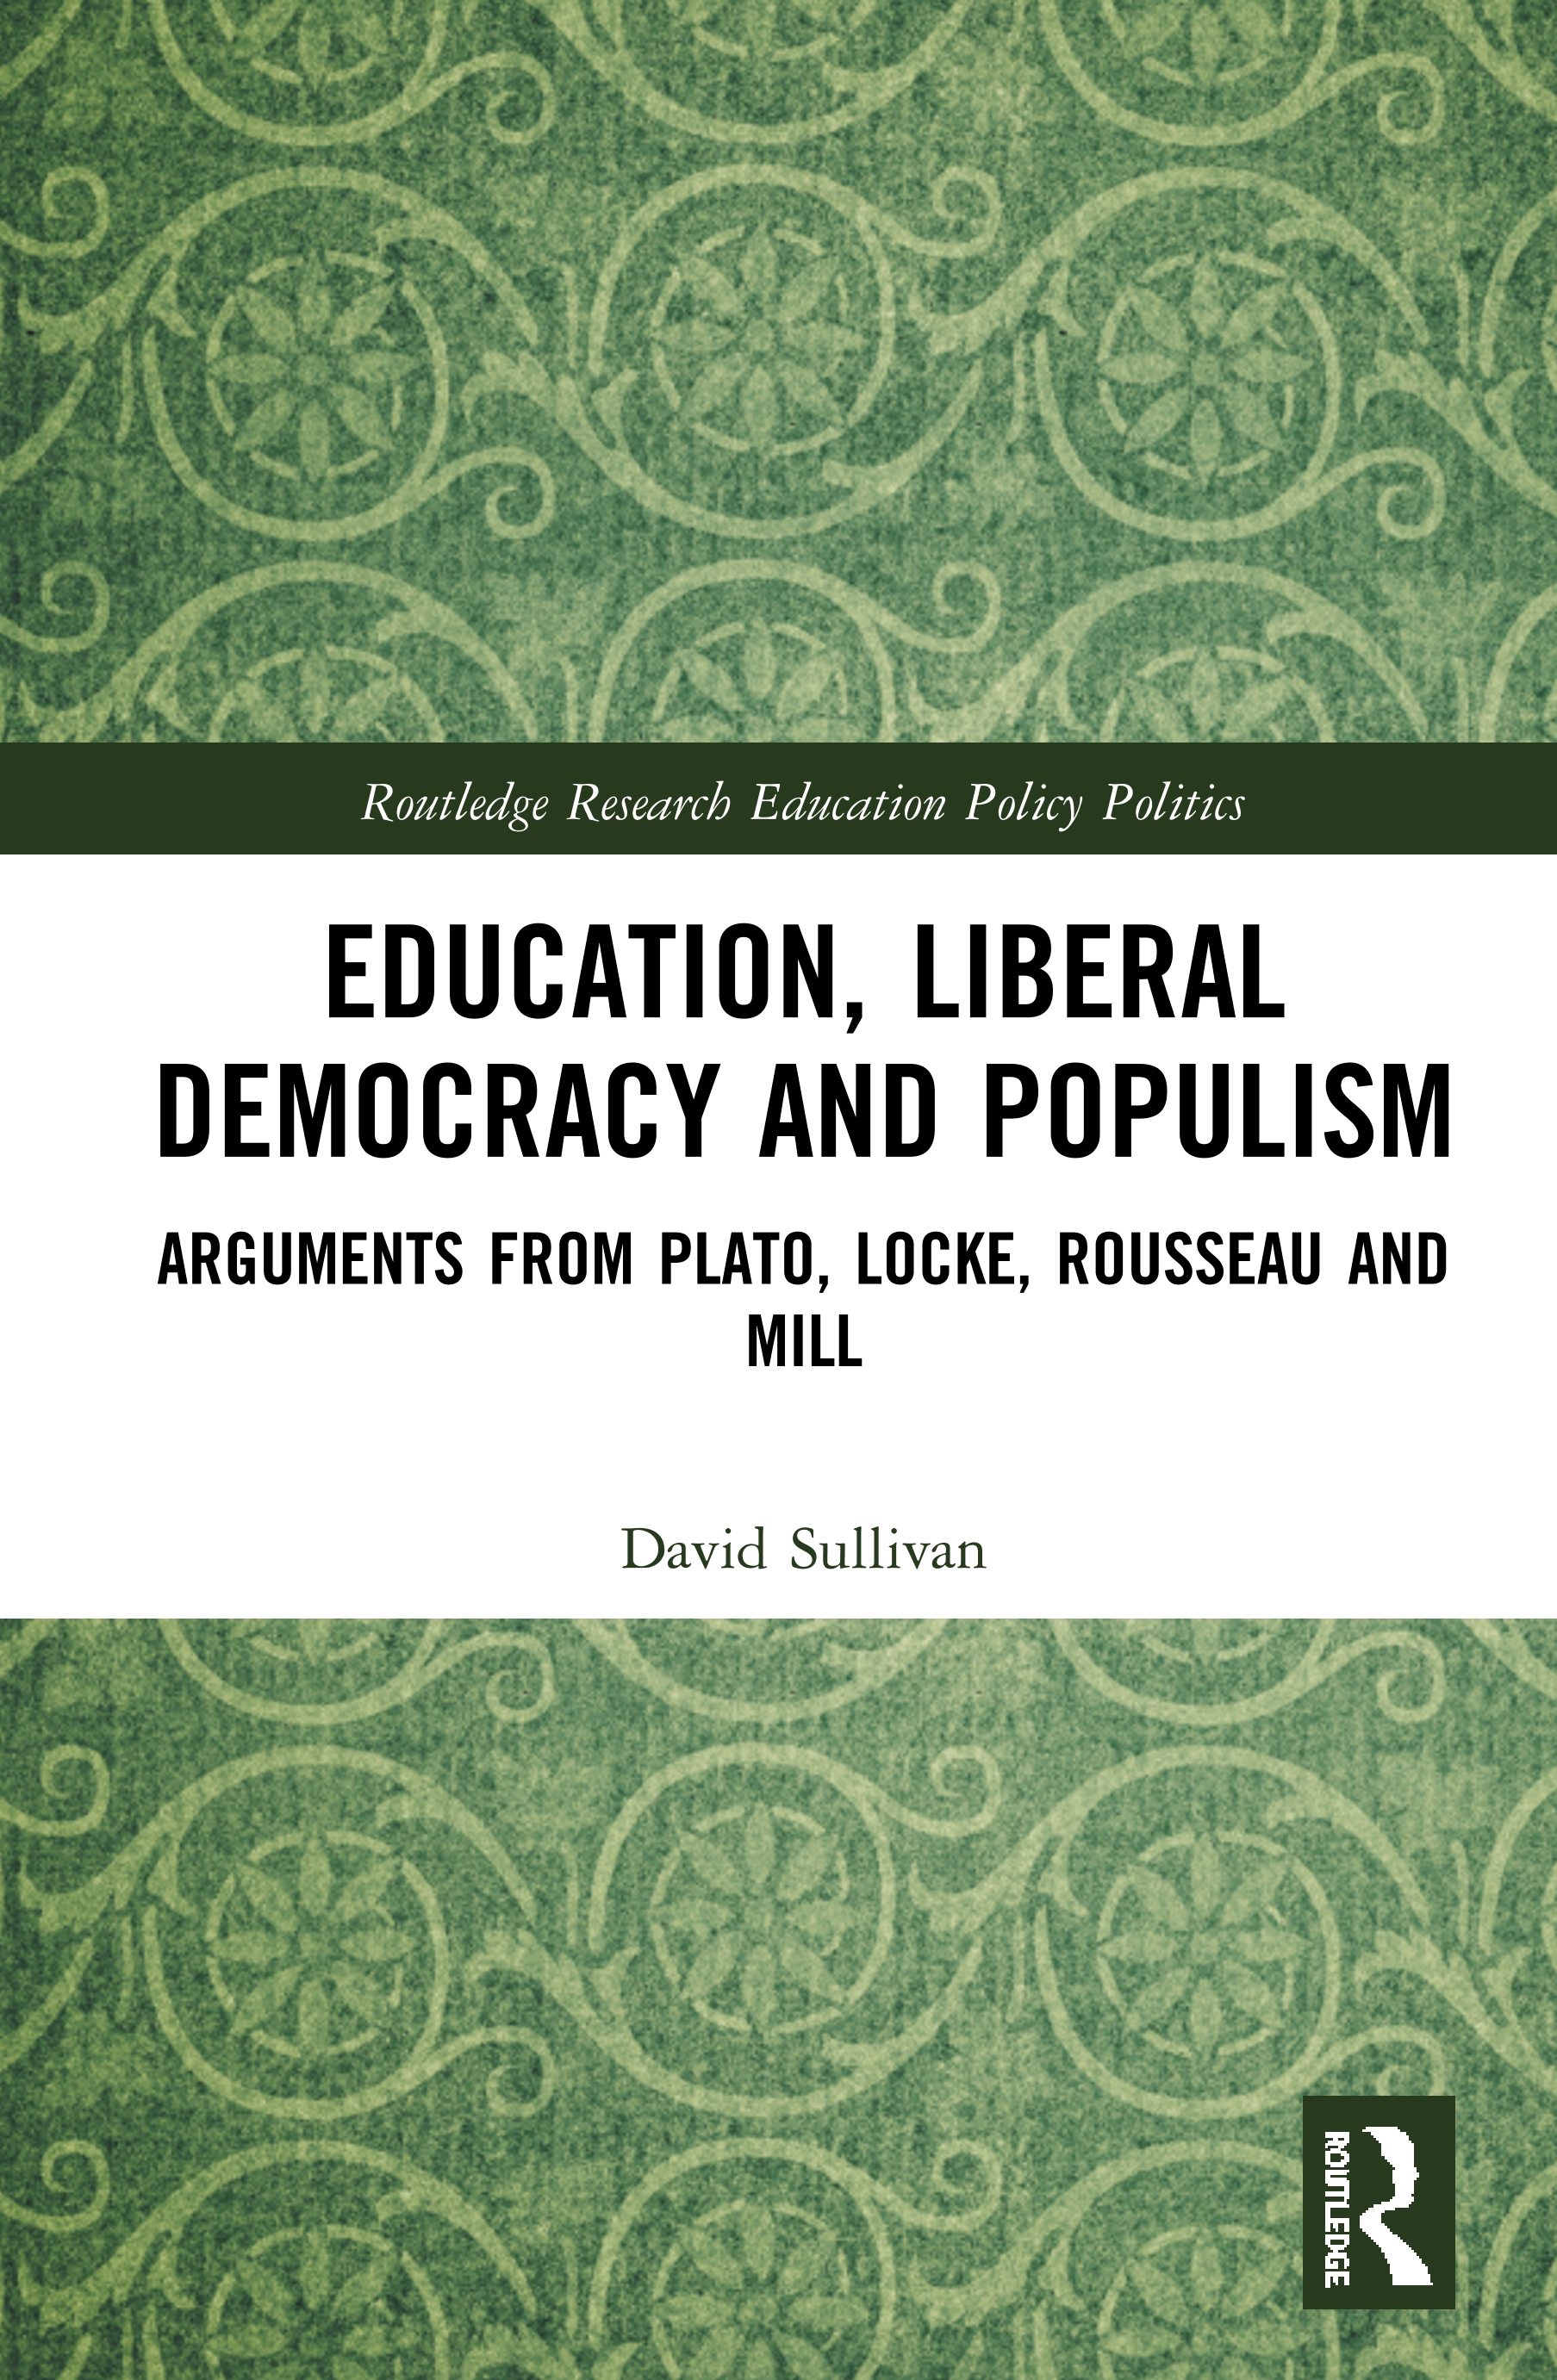 Education, Liberal Democracy and Populism: Arguments from Plato, Locke, Rousseau and Mill, 1st Edition (Hardback) book cover